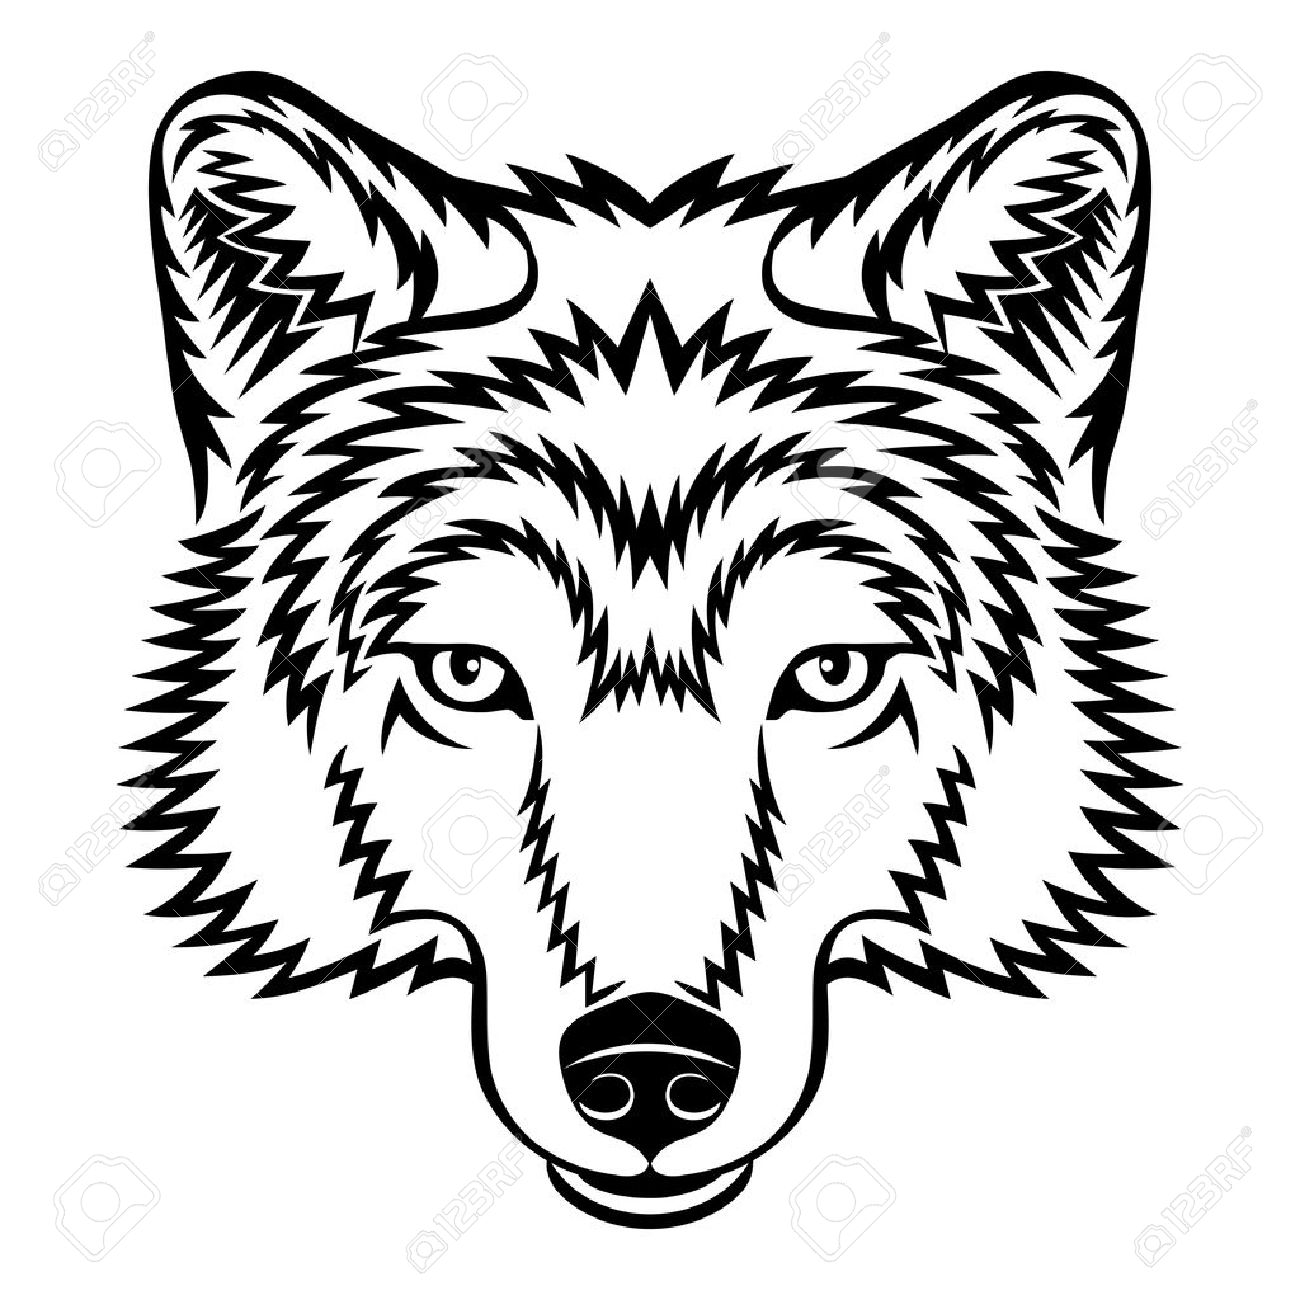 Wolf head clipart black and white 4 » Clipart Station.